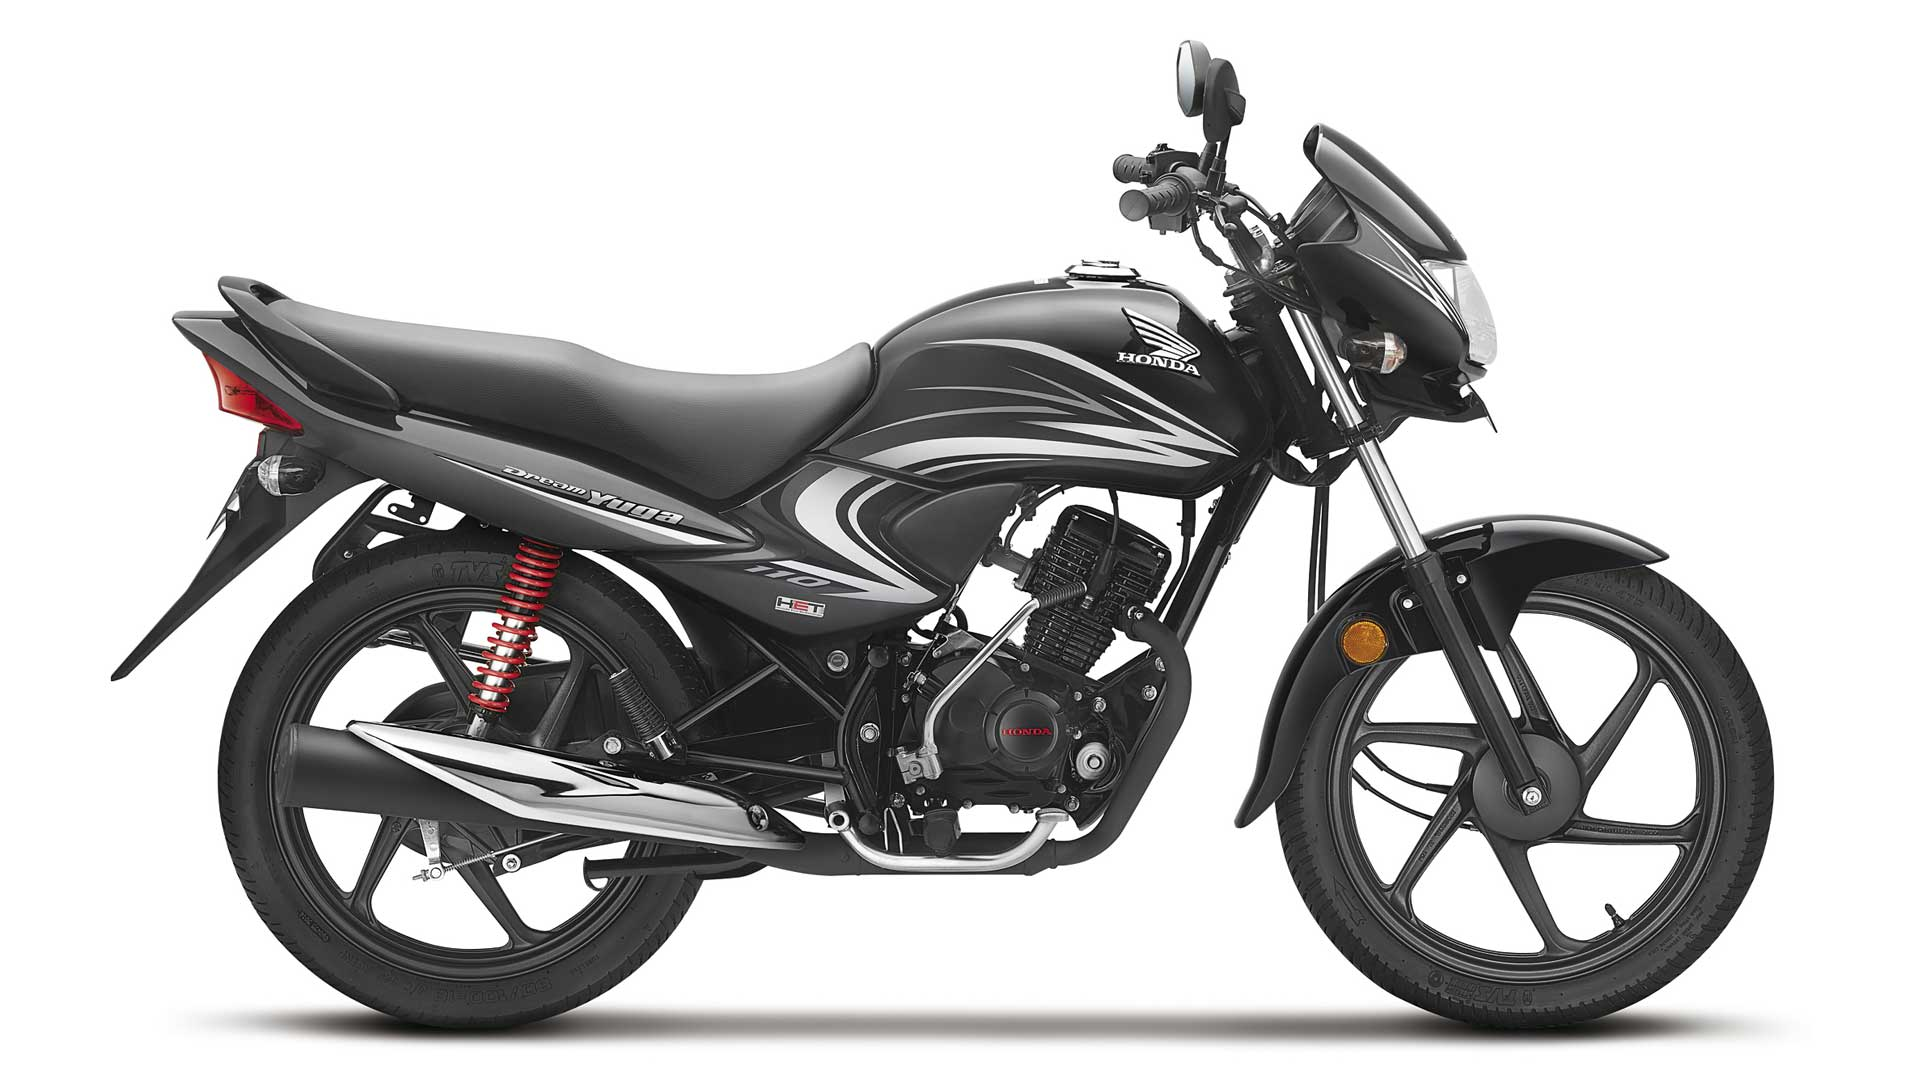 Honda Dream Yuga 2015 Exterior